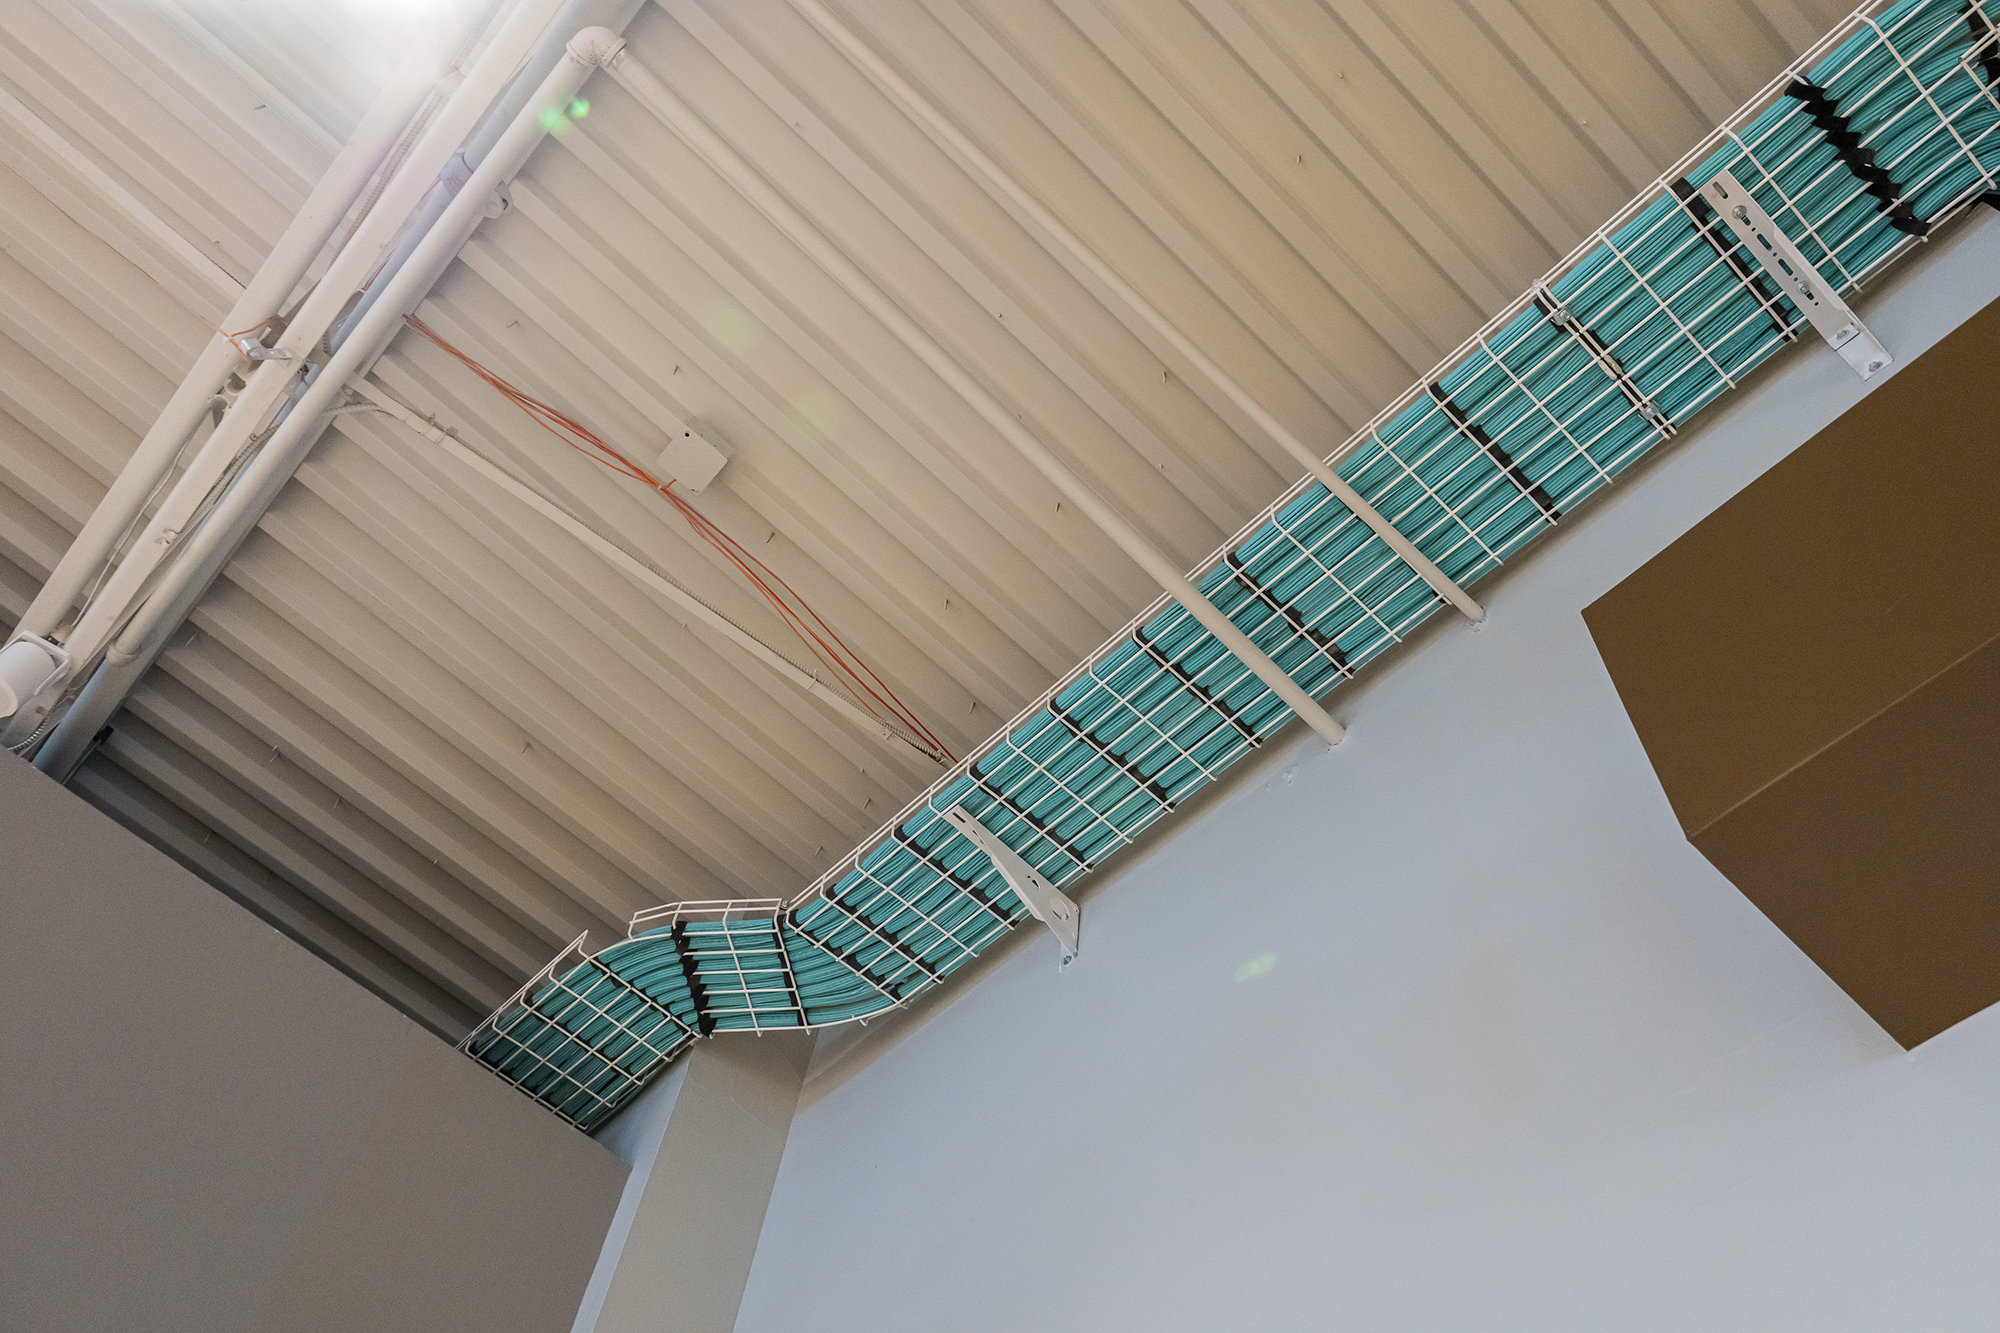 Blue cables secured to the ceiling of a room.